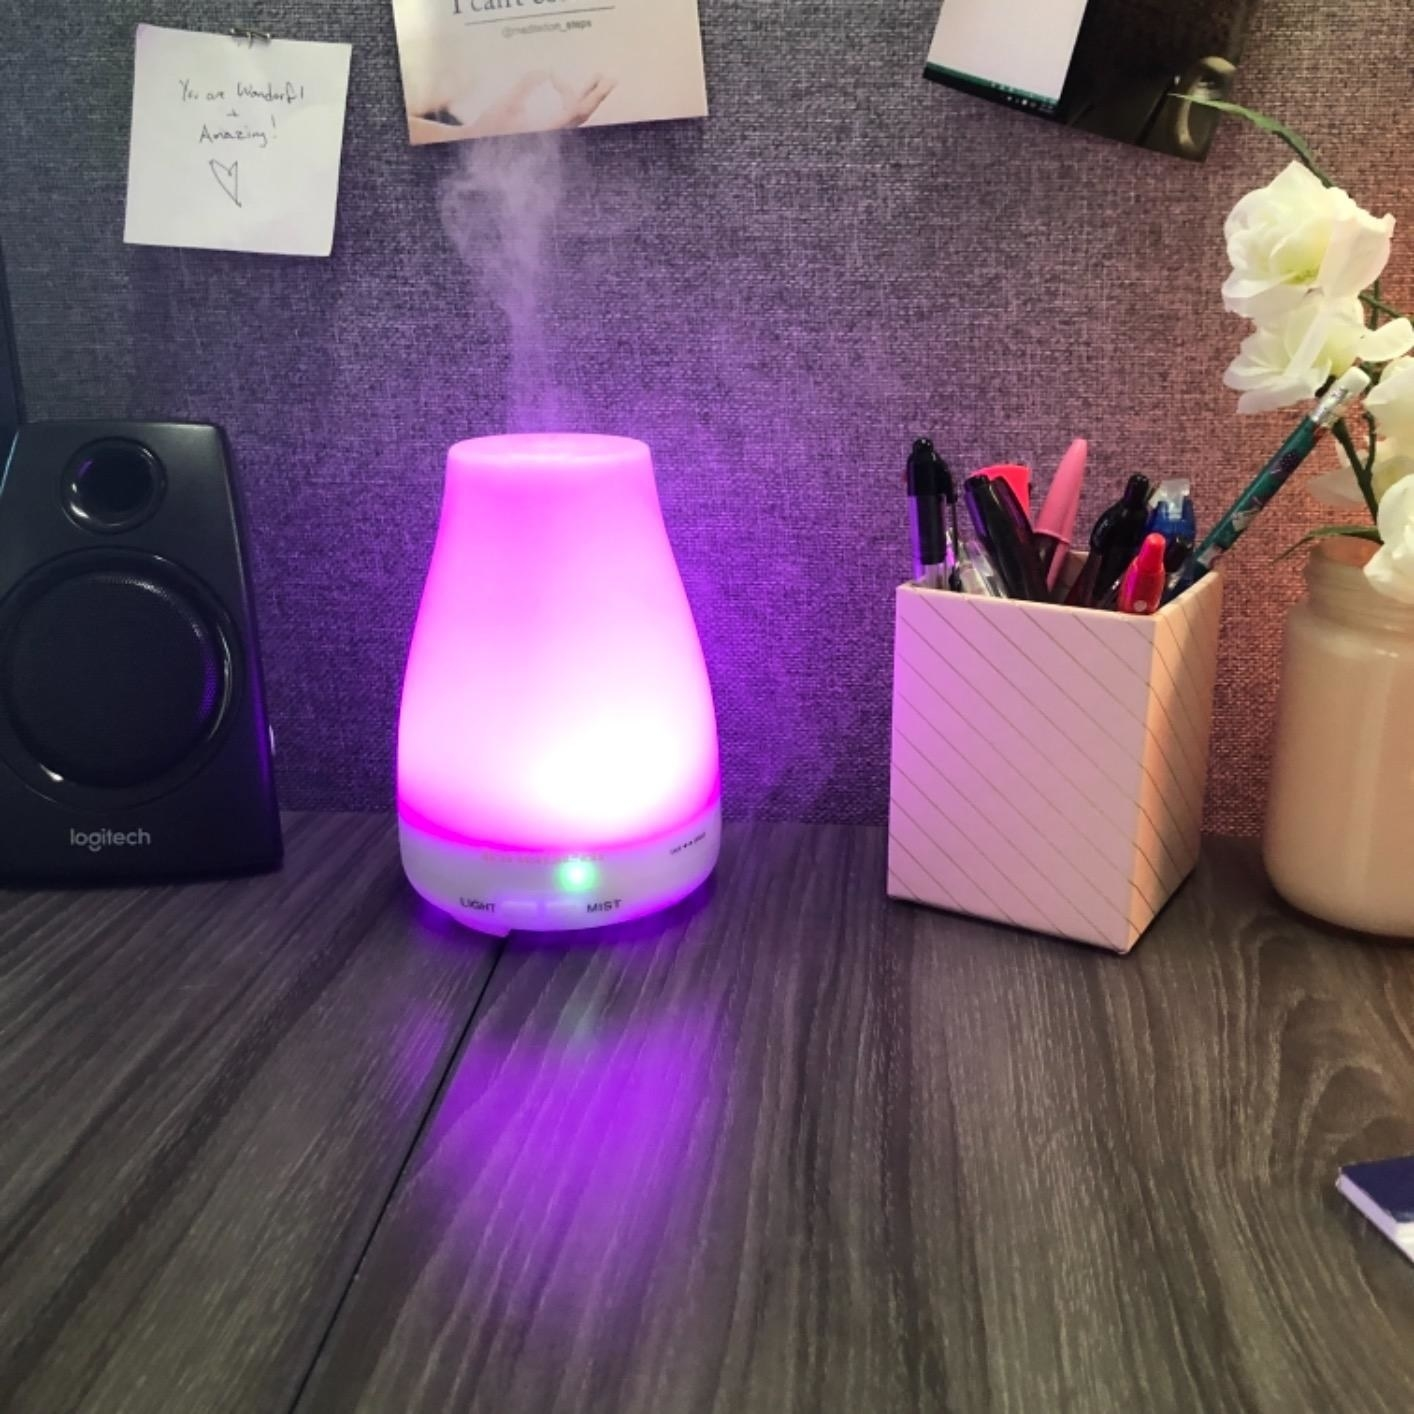 The humidifier on a desk